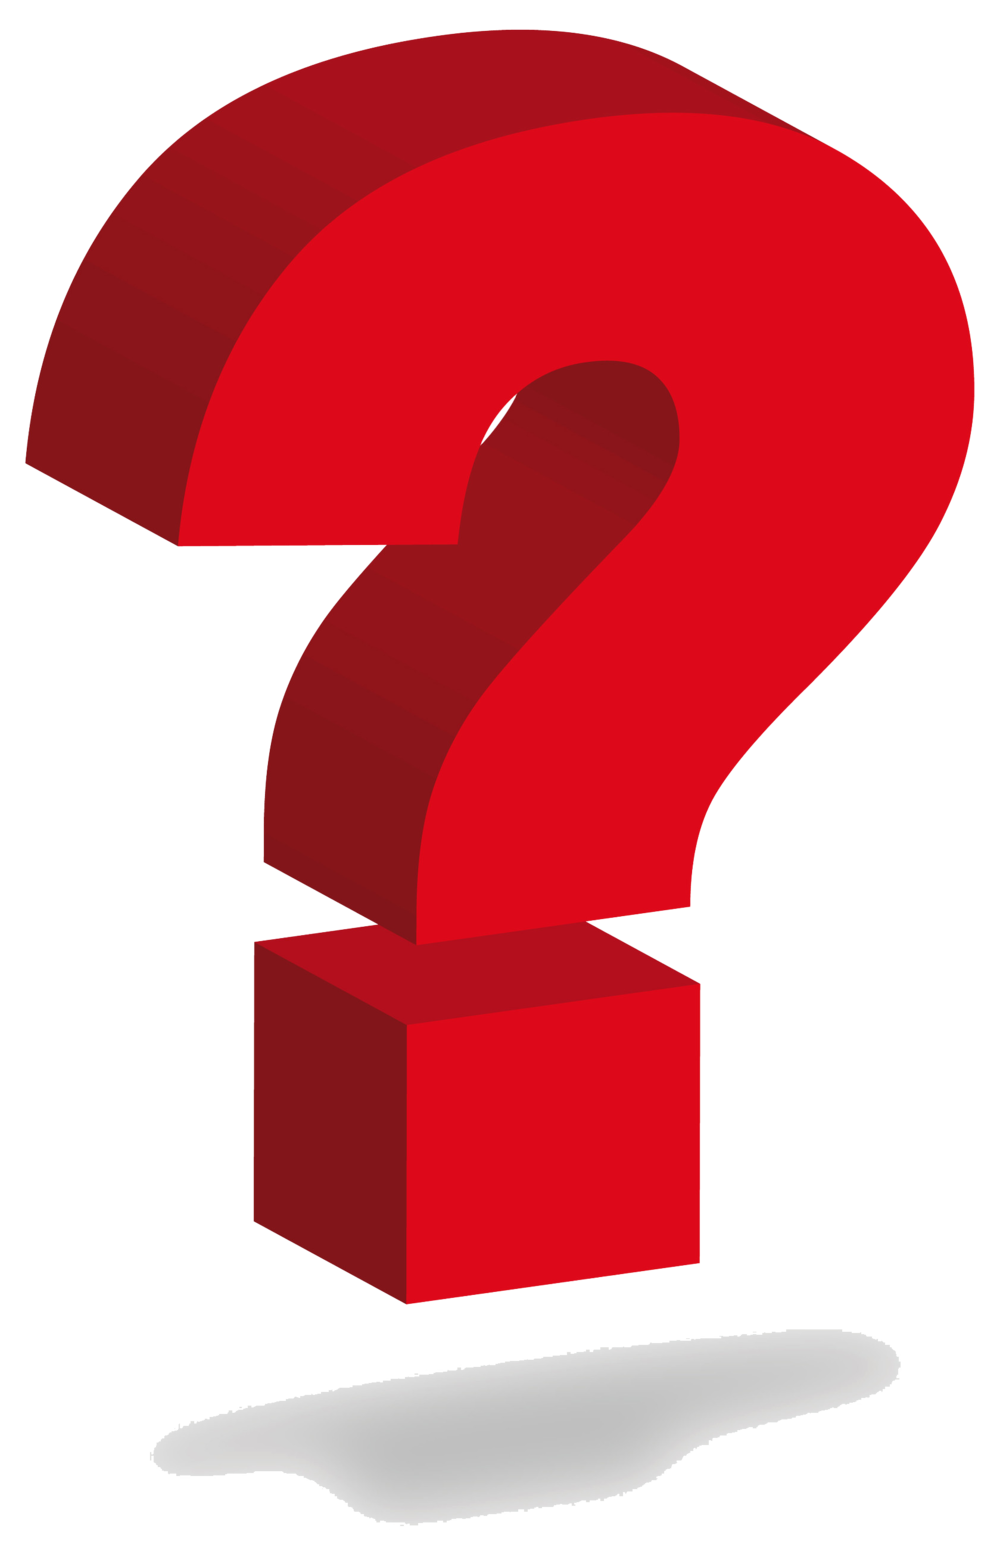 Red Question Mark Clipart Clipartfox-Red question mark clipart clipartfox-19